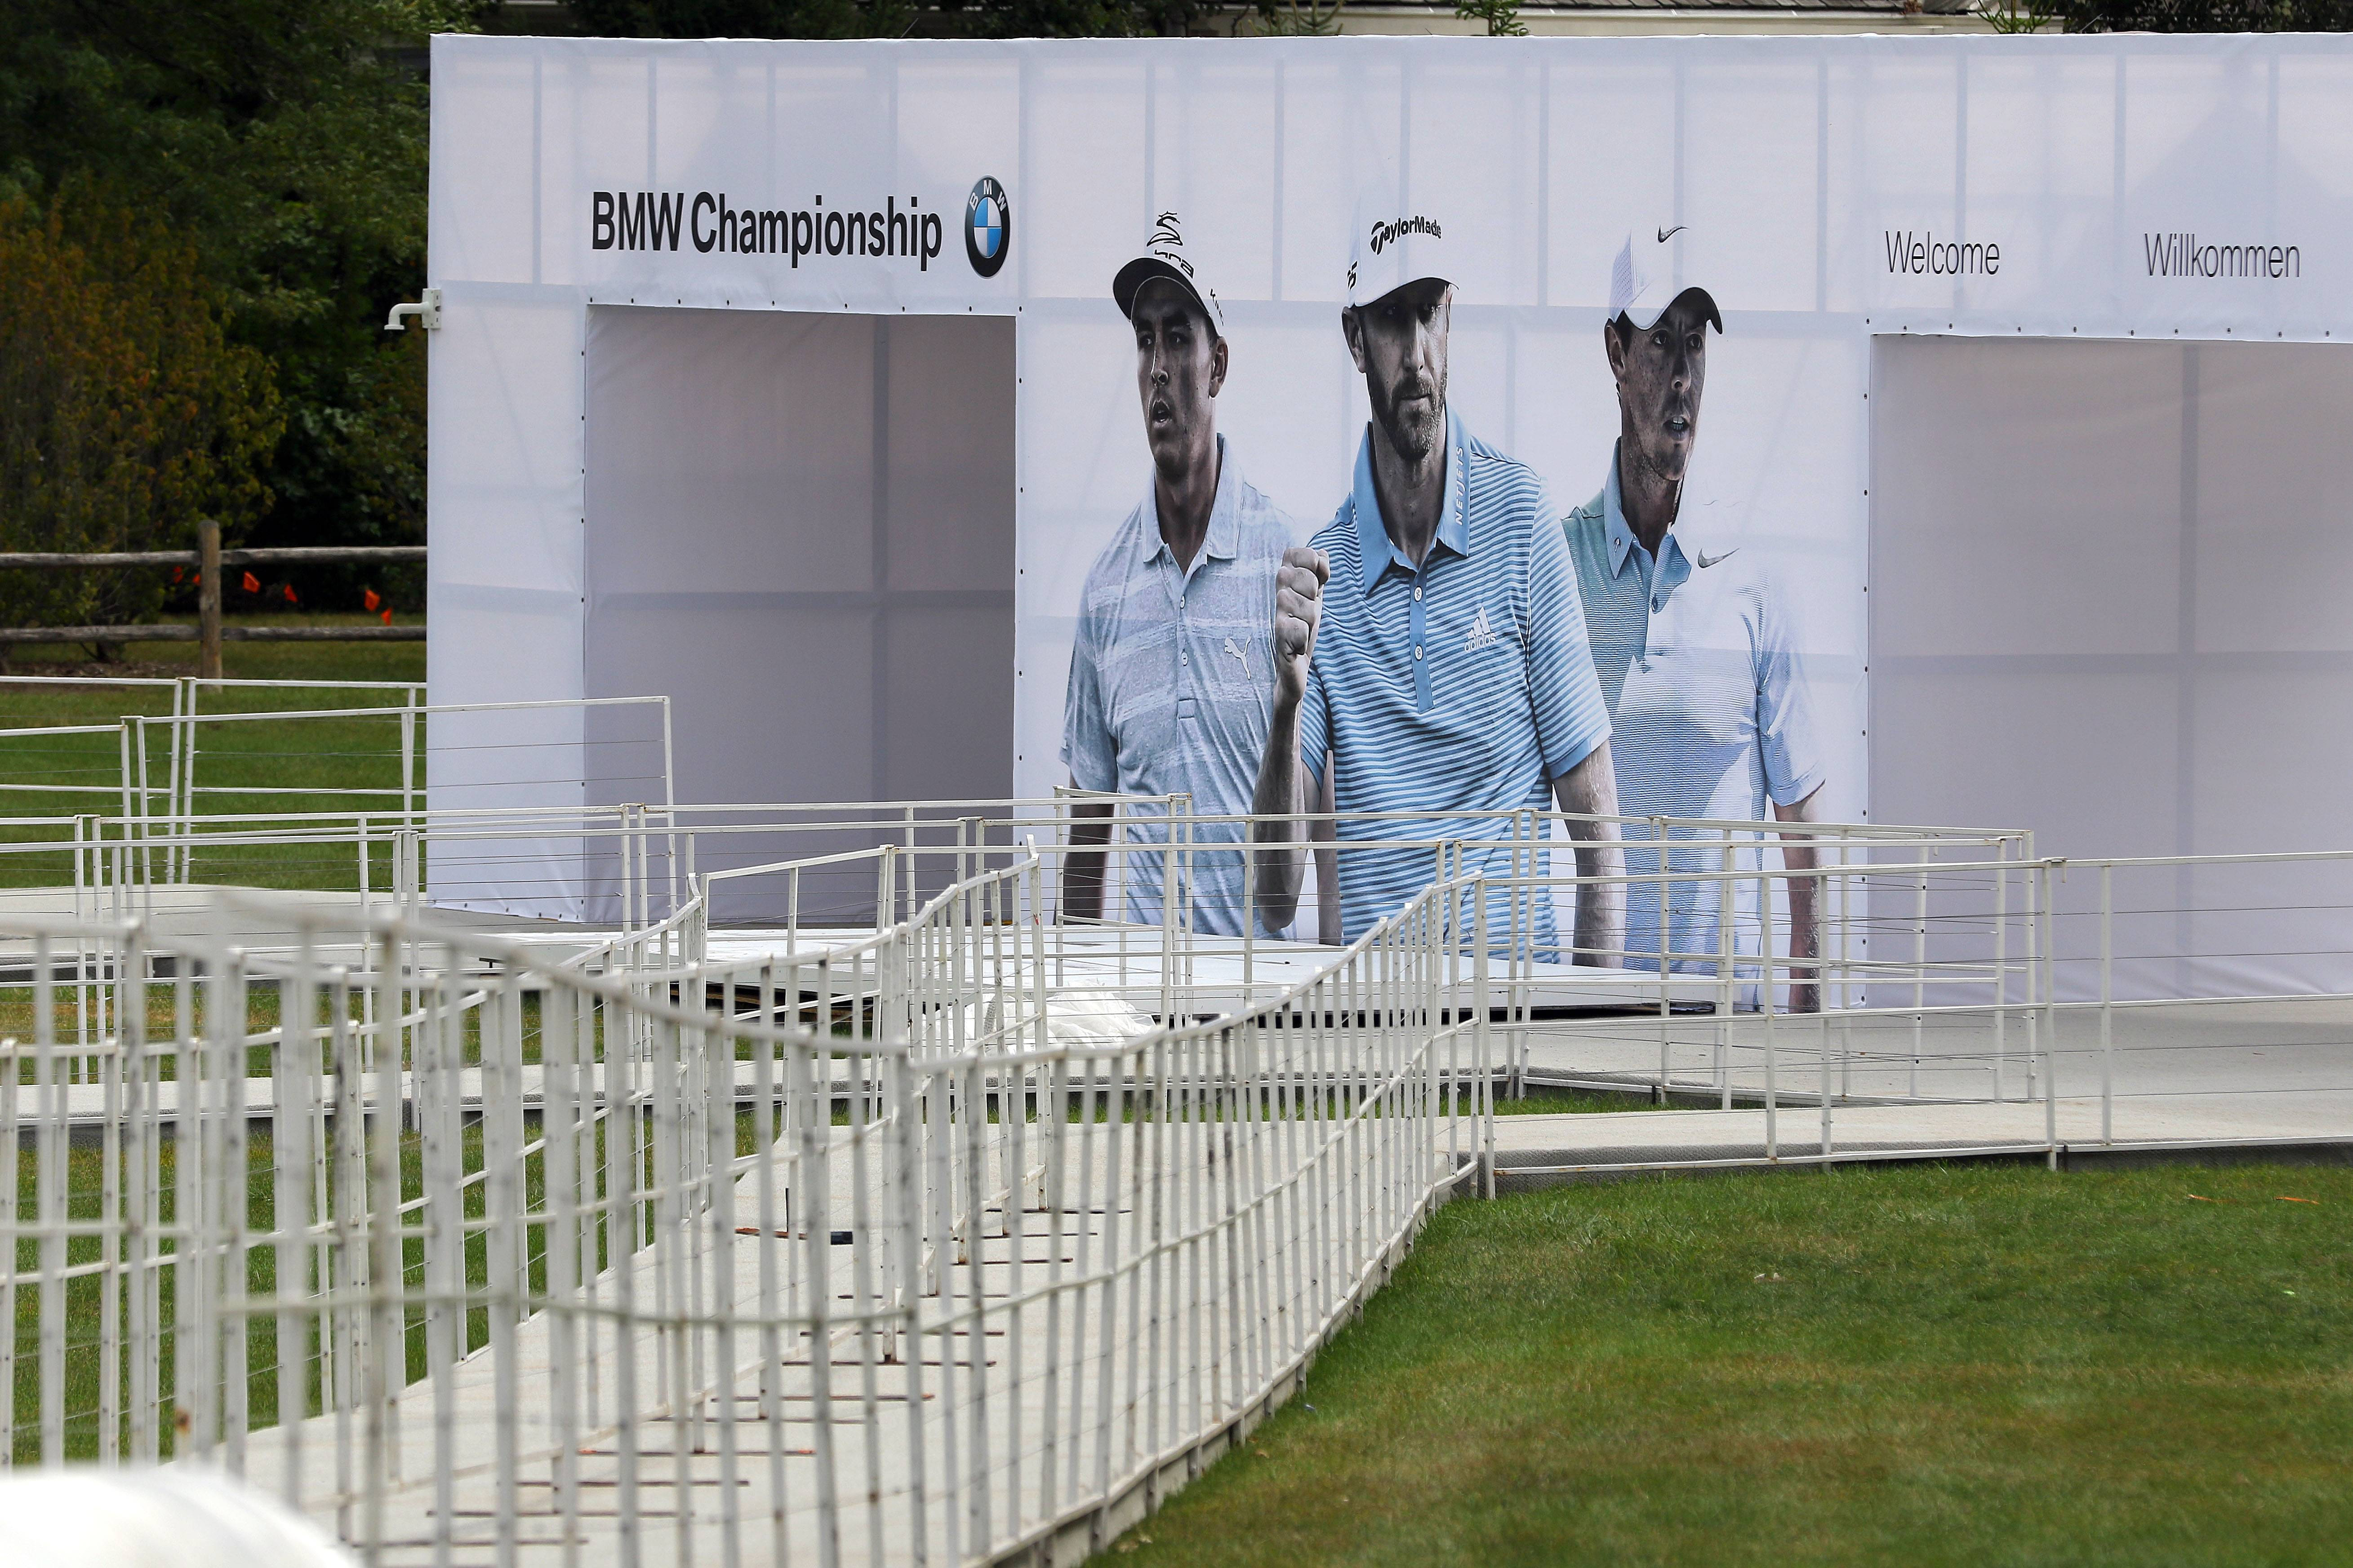 The entrance for The BMW Championship golf tournament is ready to go at Conway Farms in Lake Forest. Tournament play begins Thursday.